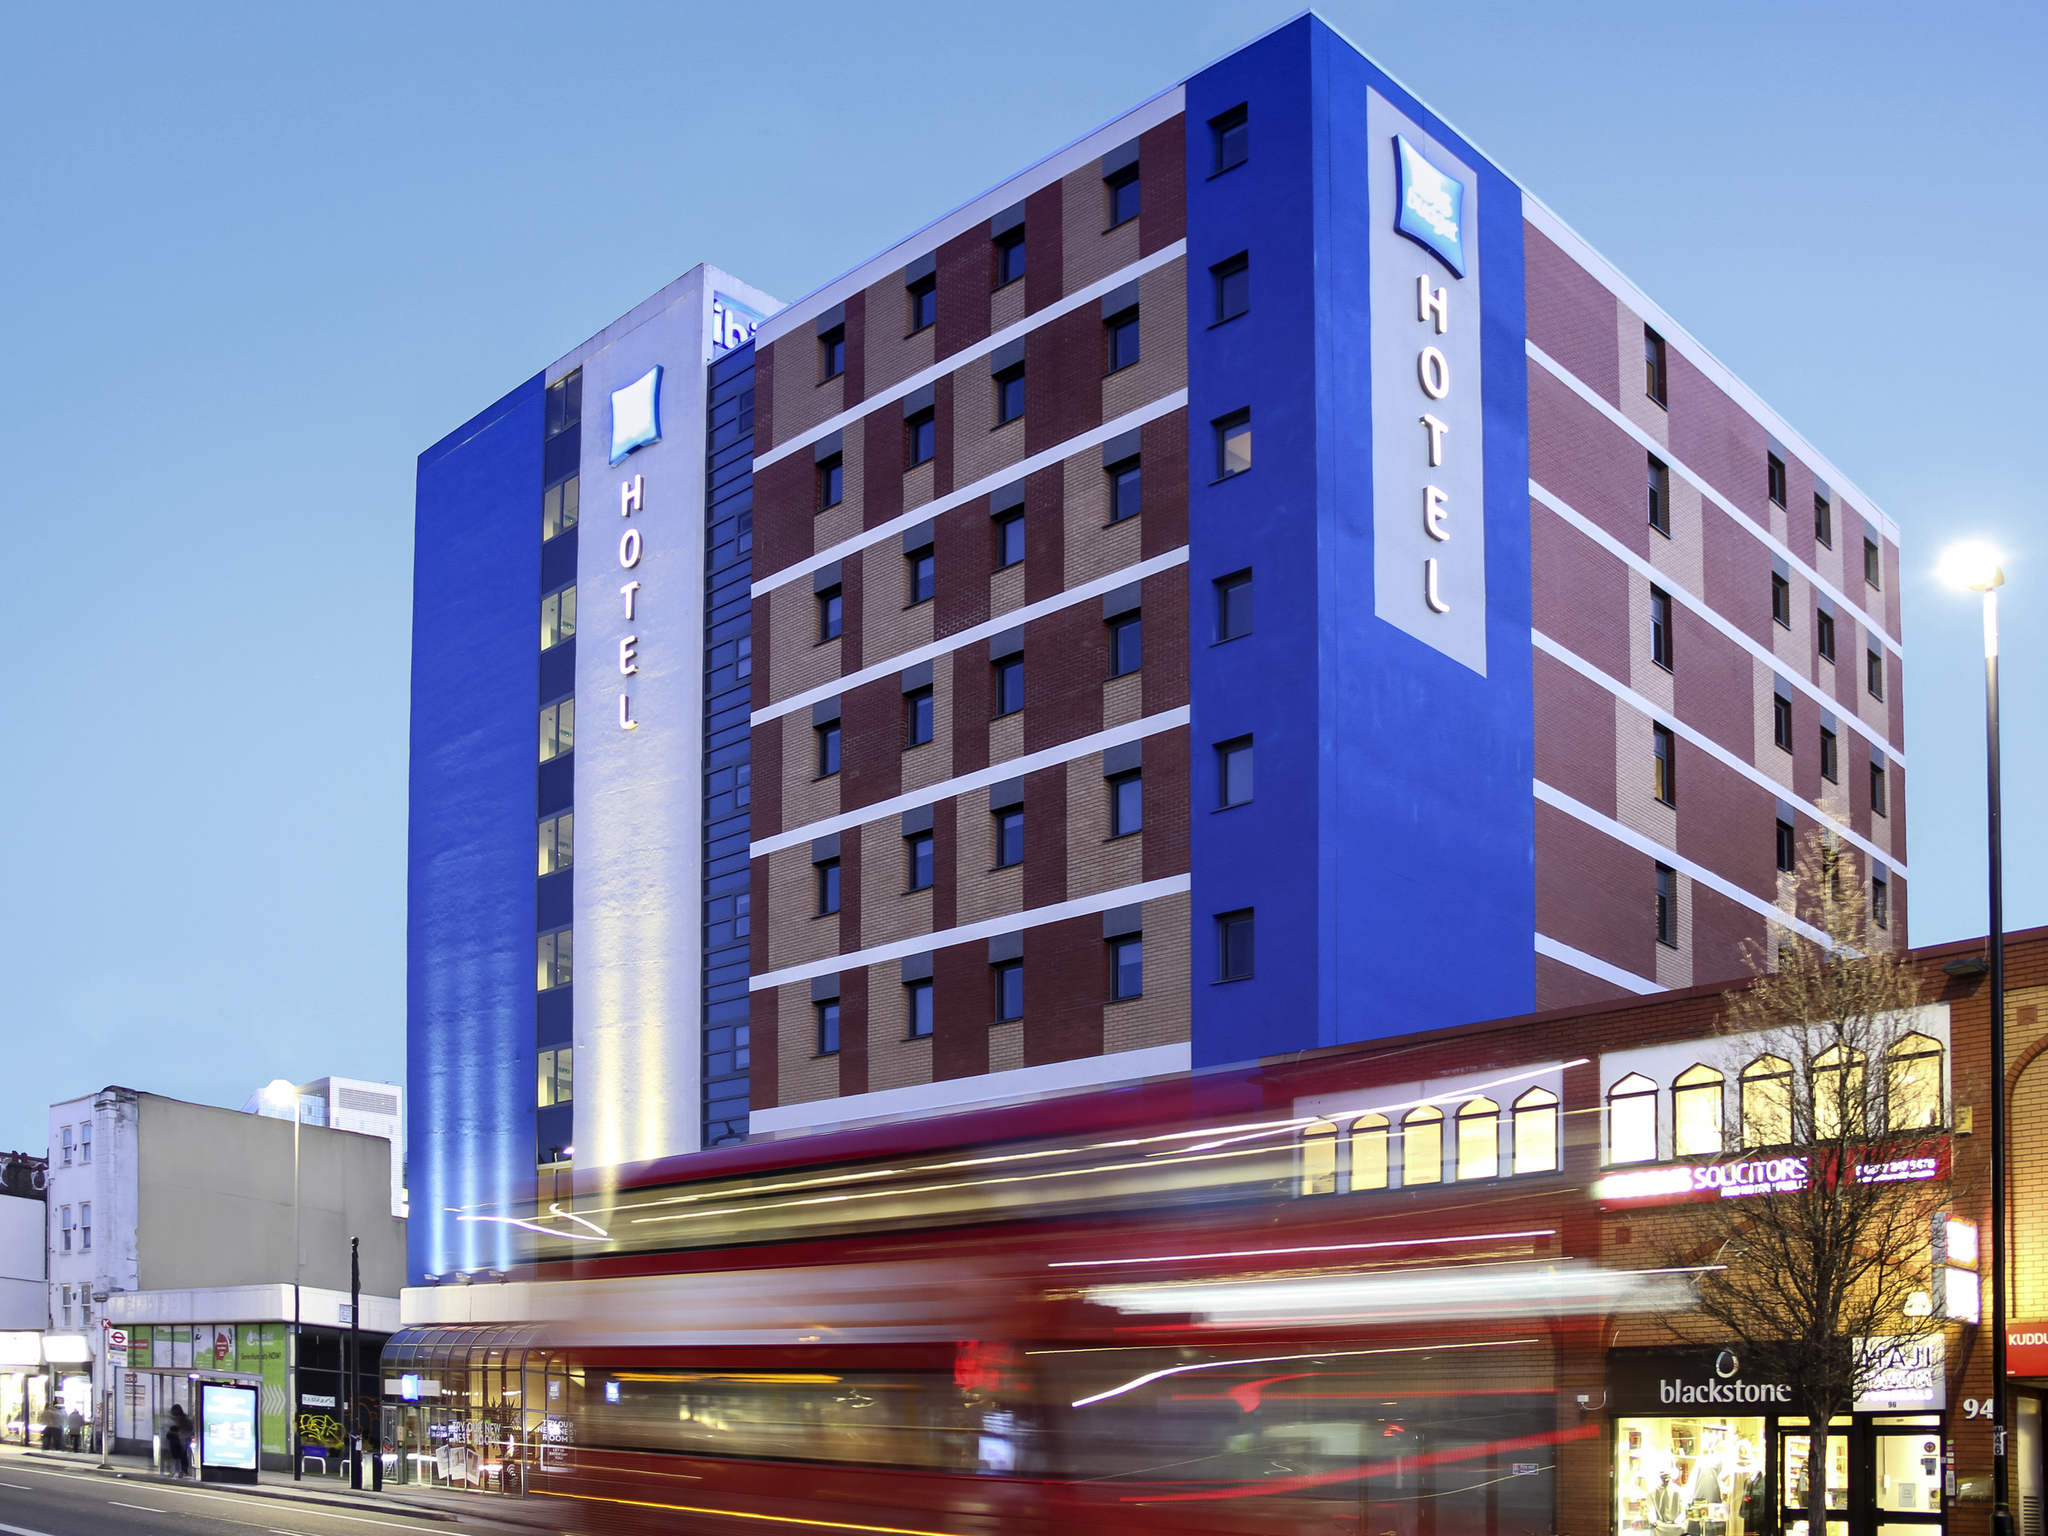 H tel londres ibis budget londres whitechapel brick lane for Hotel adagio londres